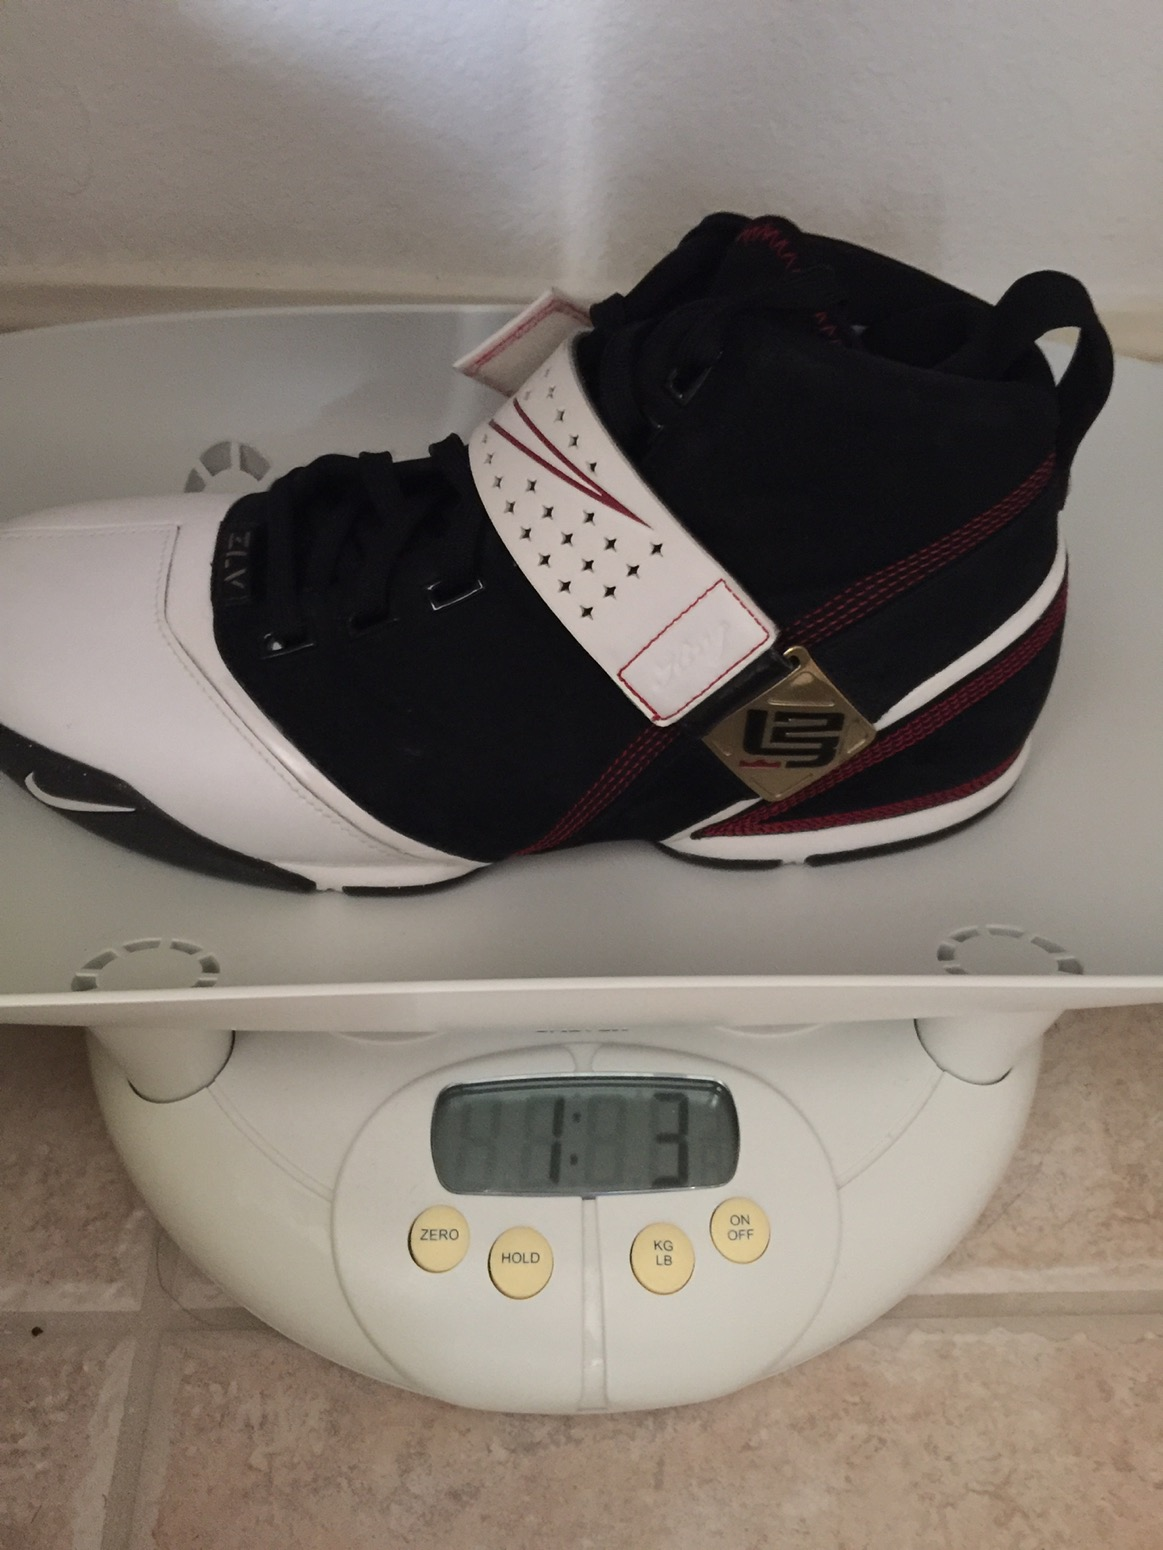 competitive price 5da48 ac40d 19 ounces in a size 11. Pretty much 5-6 ounces heavier than today s average  shoe.